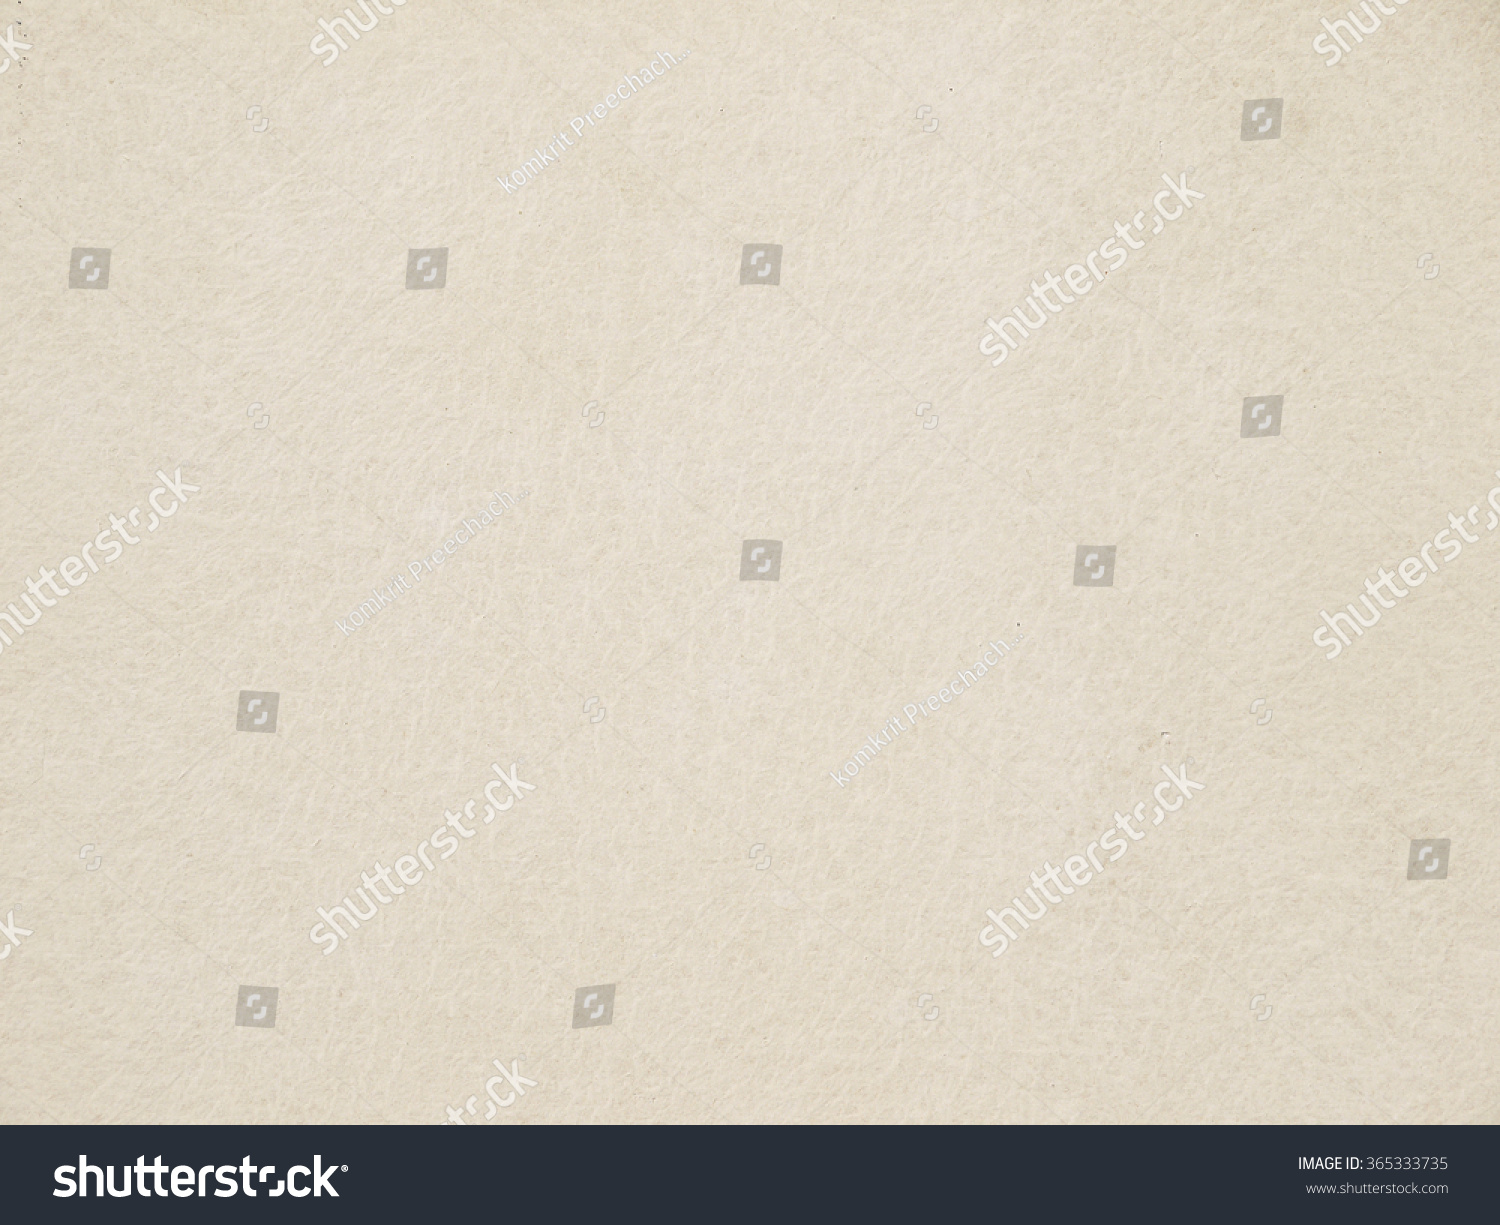 Gypsum Board Texture : Gypsum board texture stock photo shutterstock